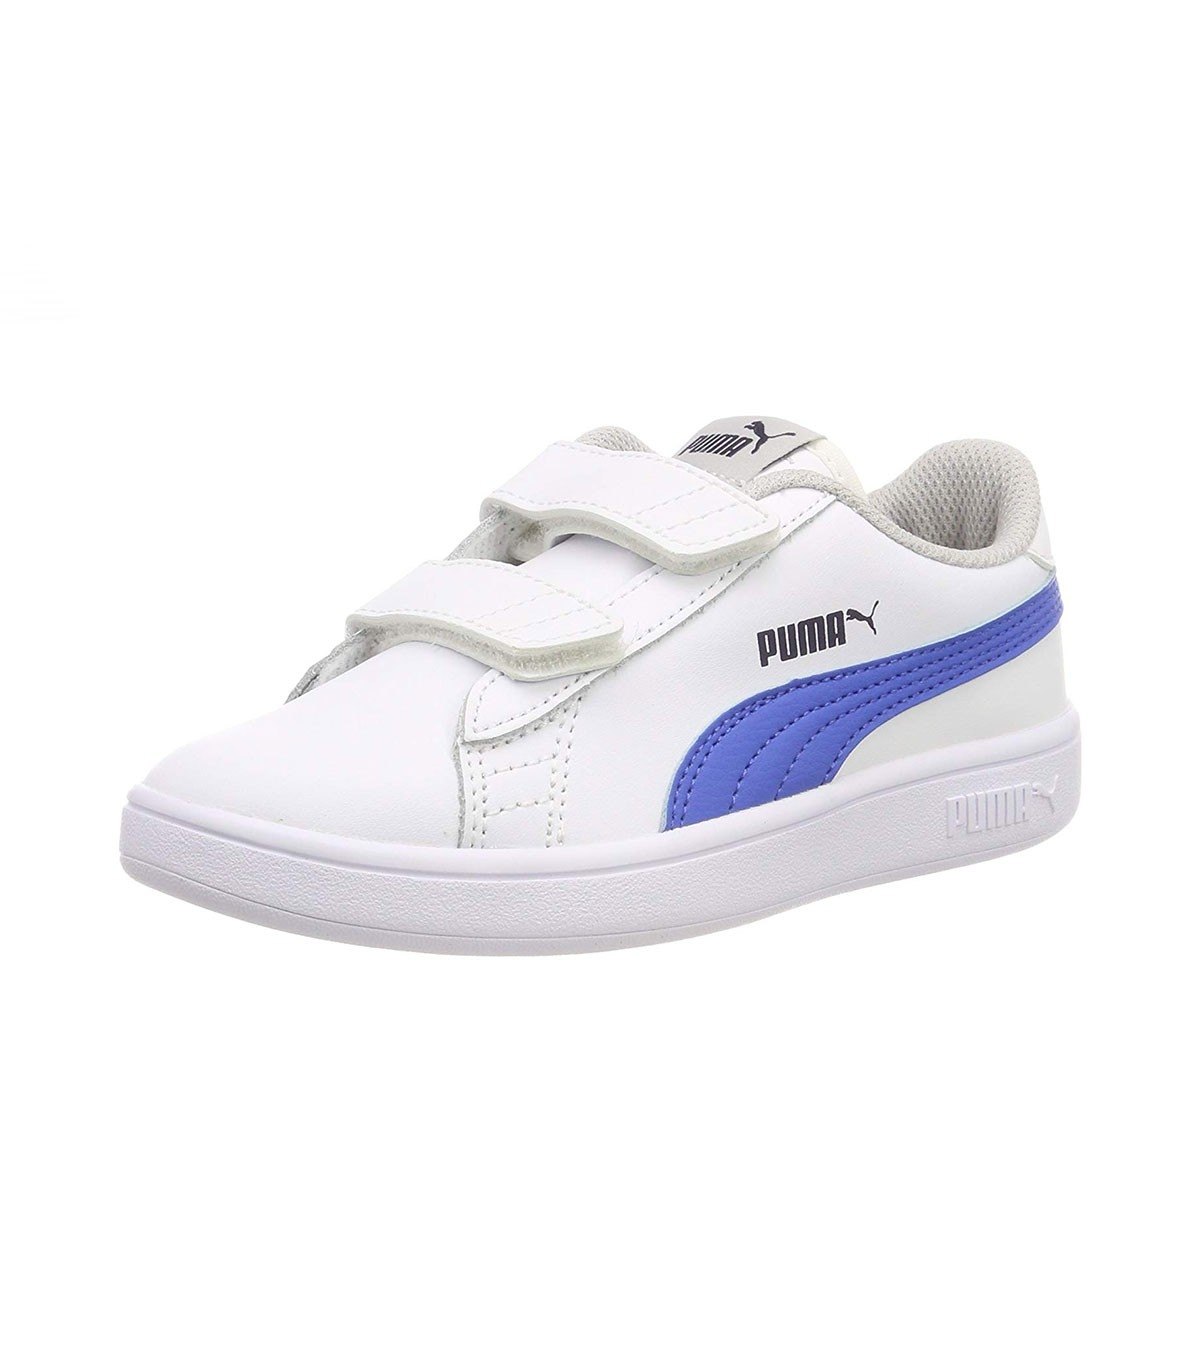 5d44fbec27 Buy Puma Smash V2 L V Ps